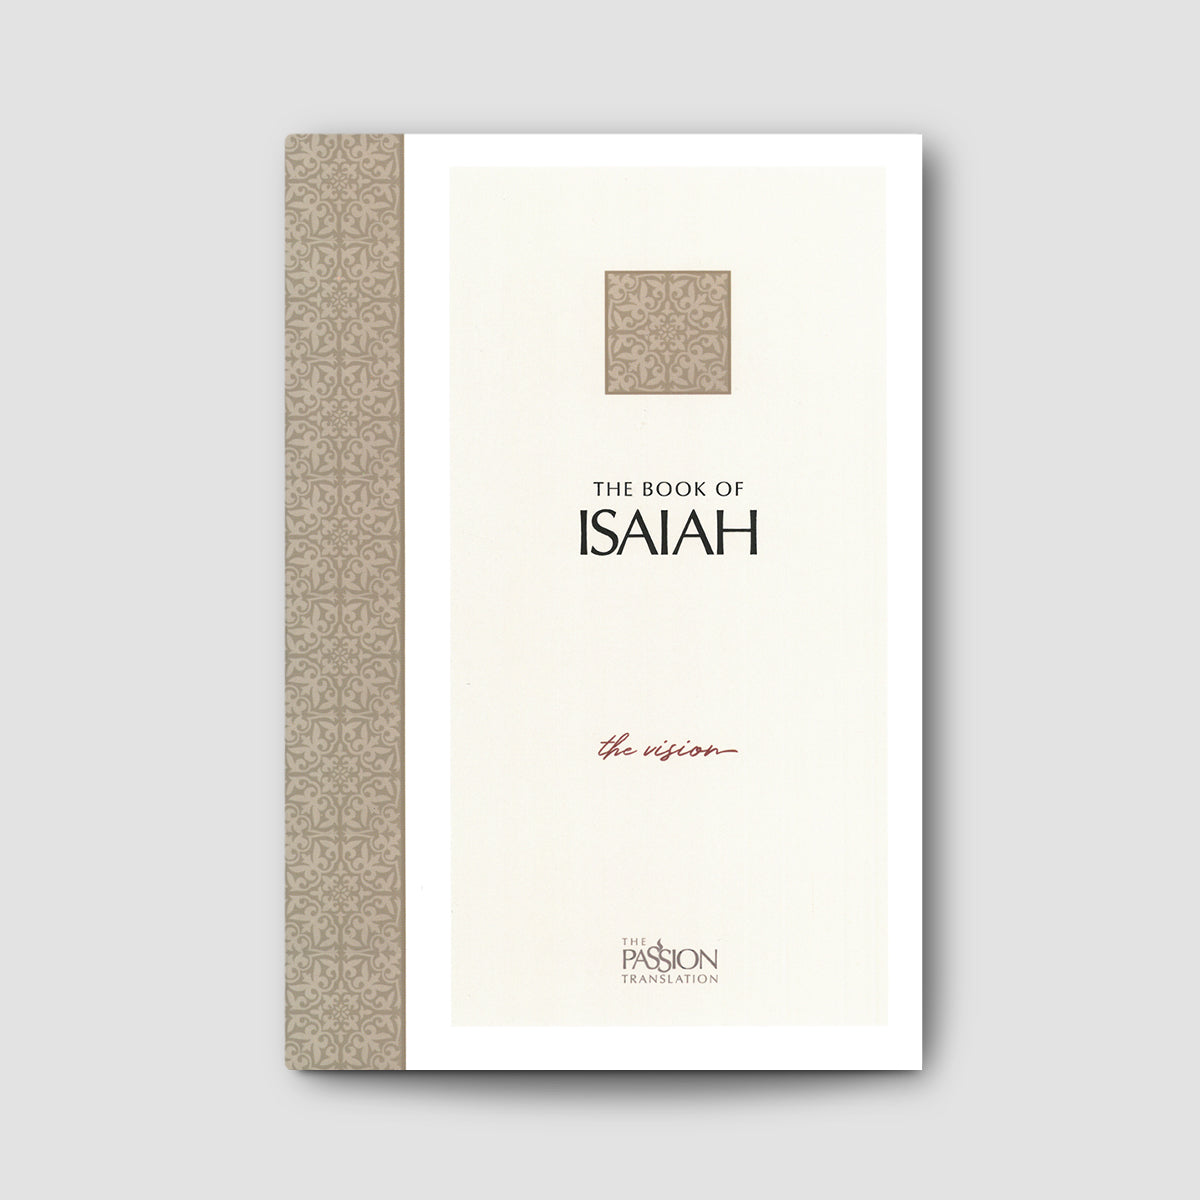 The Book of Isaiah (The Passion Translation)